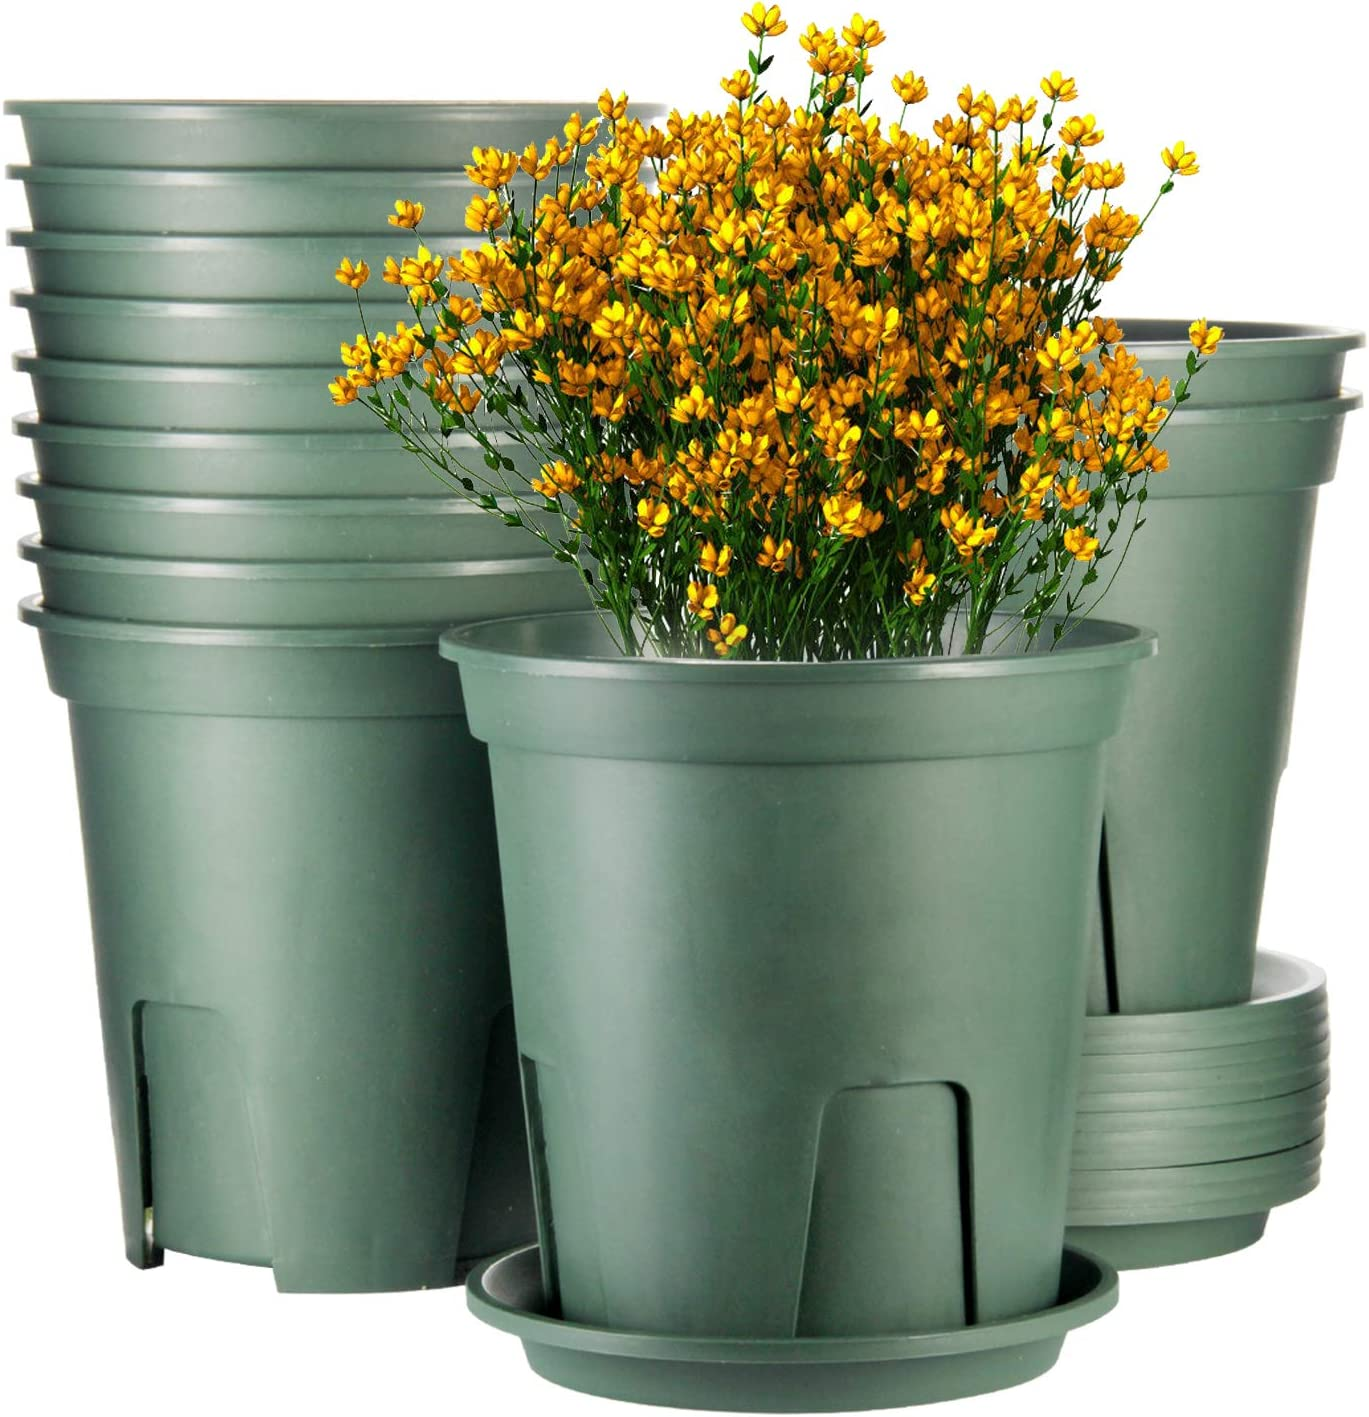 Plant Pots Indoor 7 Inch ,EHWINE 12 Set Plastic Flower Planters with Drainage Hole and Trayr Garden Planters